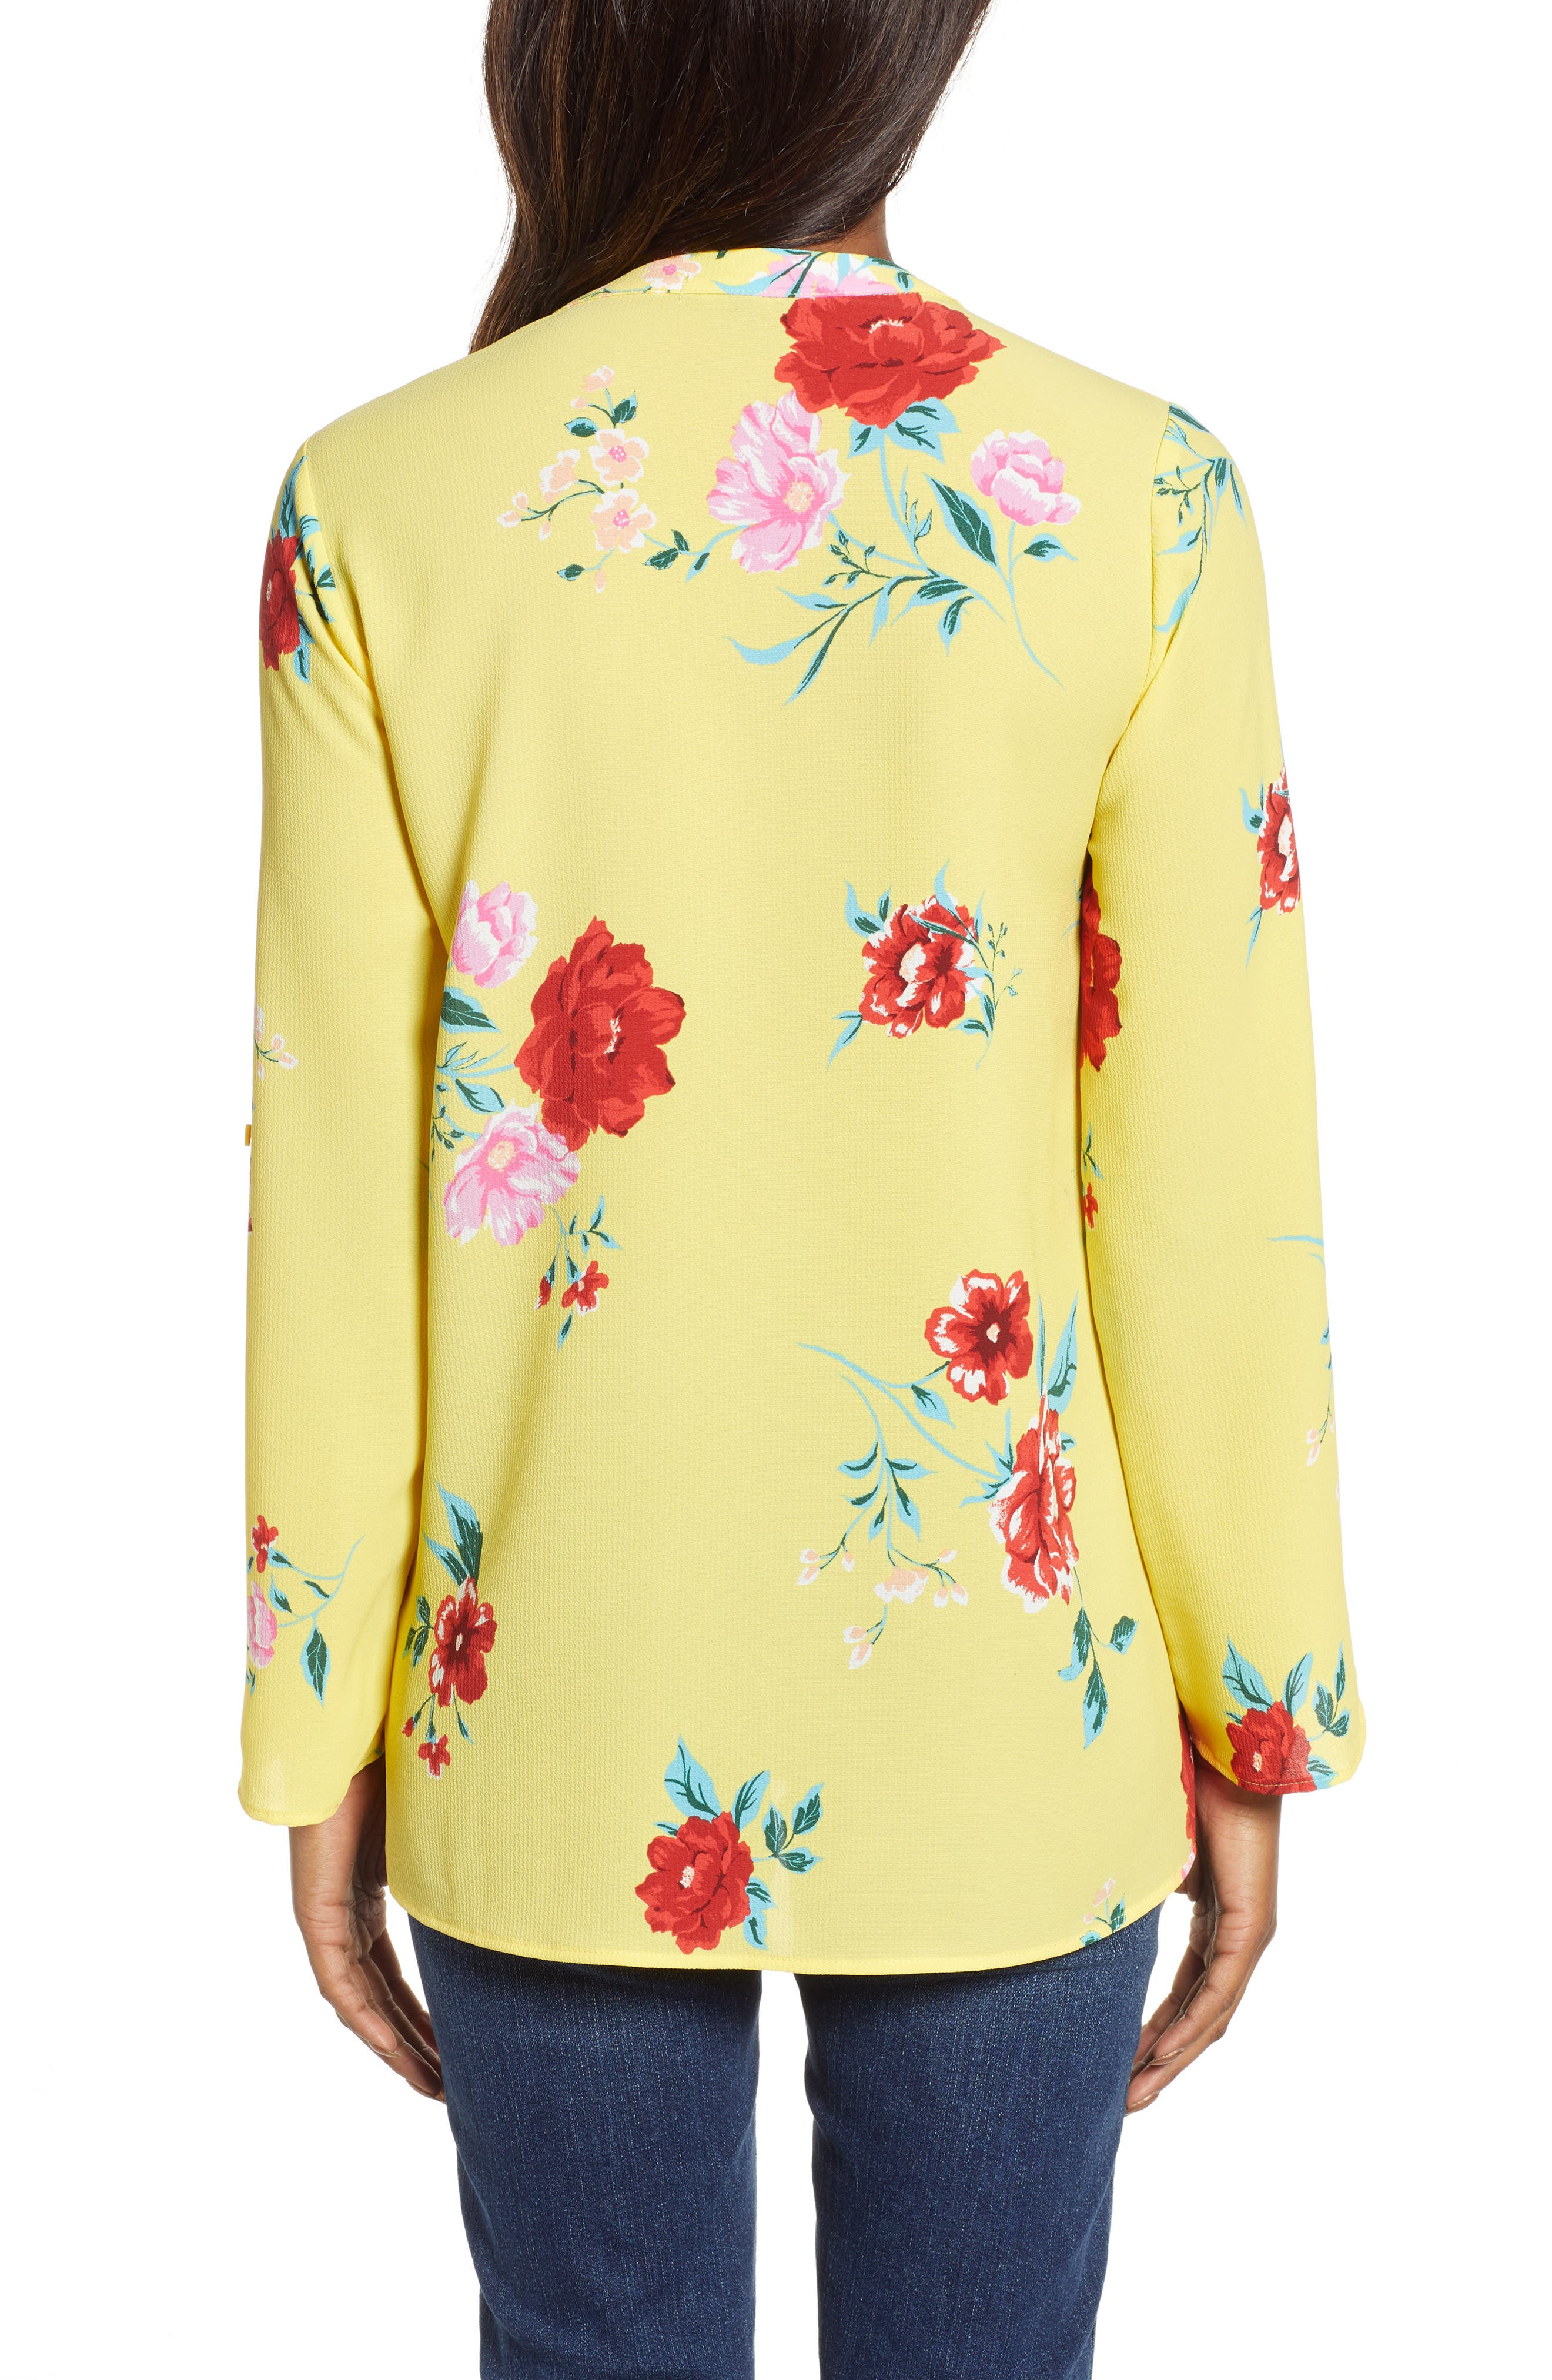 GIBSON, x International Women's Day Erin Cross Front Tunic Blouse, Alternate thumbnail 2, color, VIRGINIA BLOOM